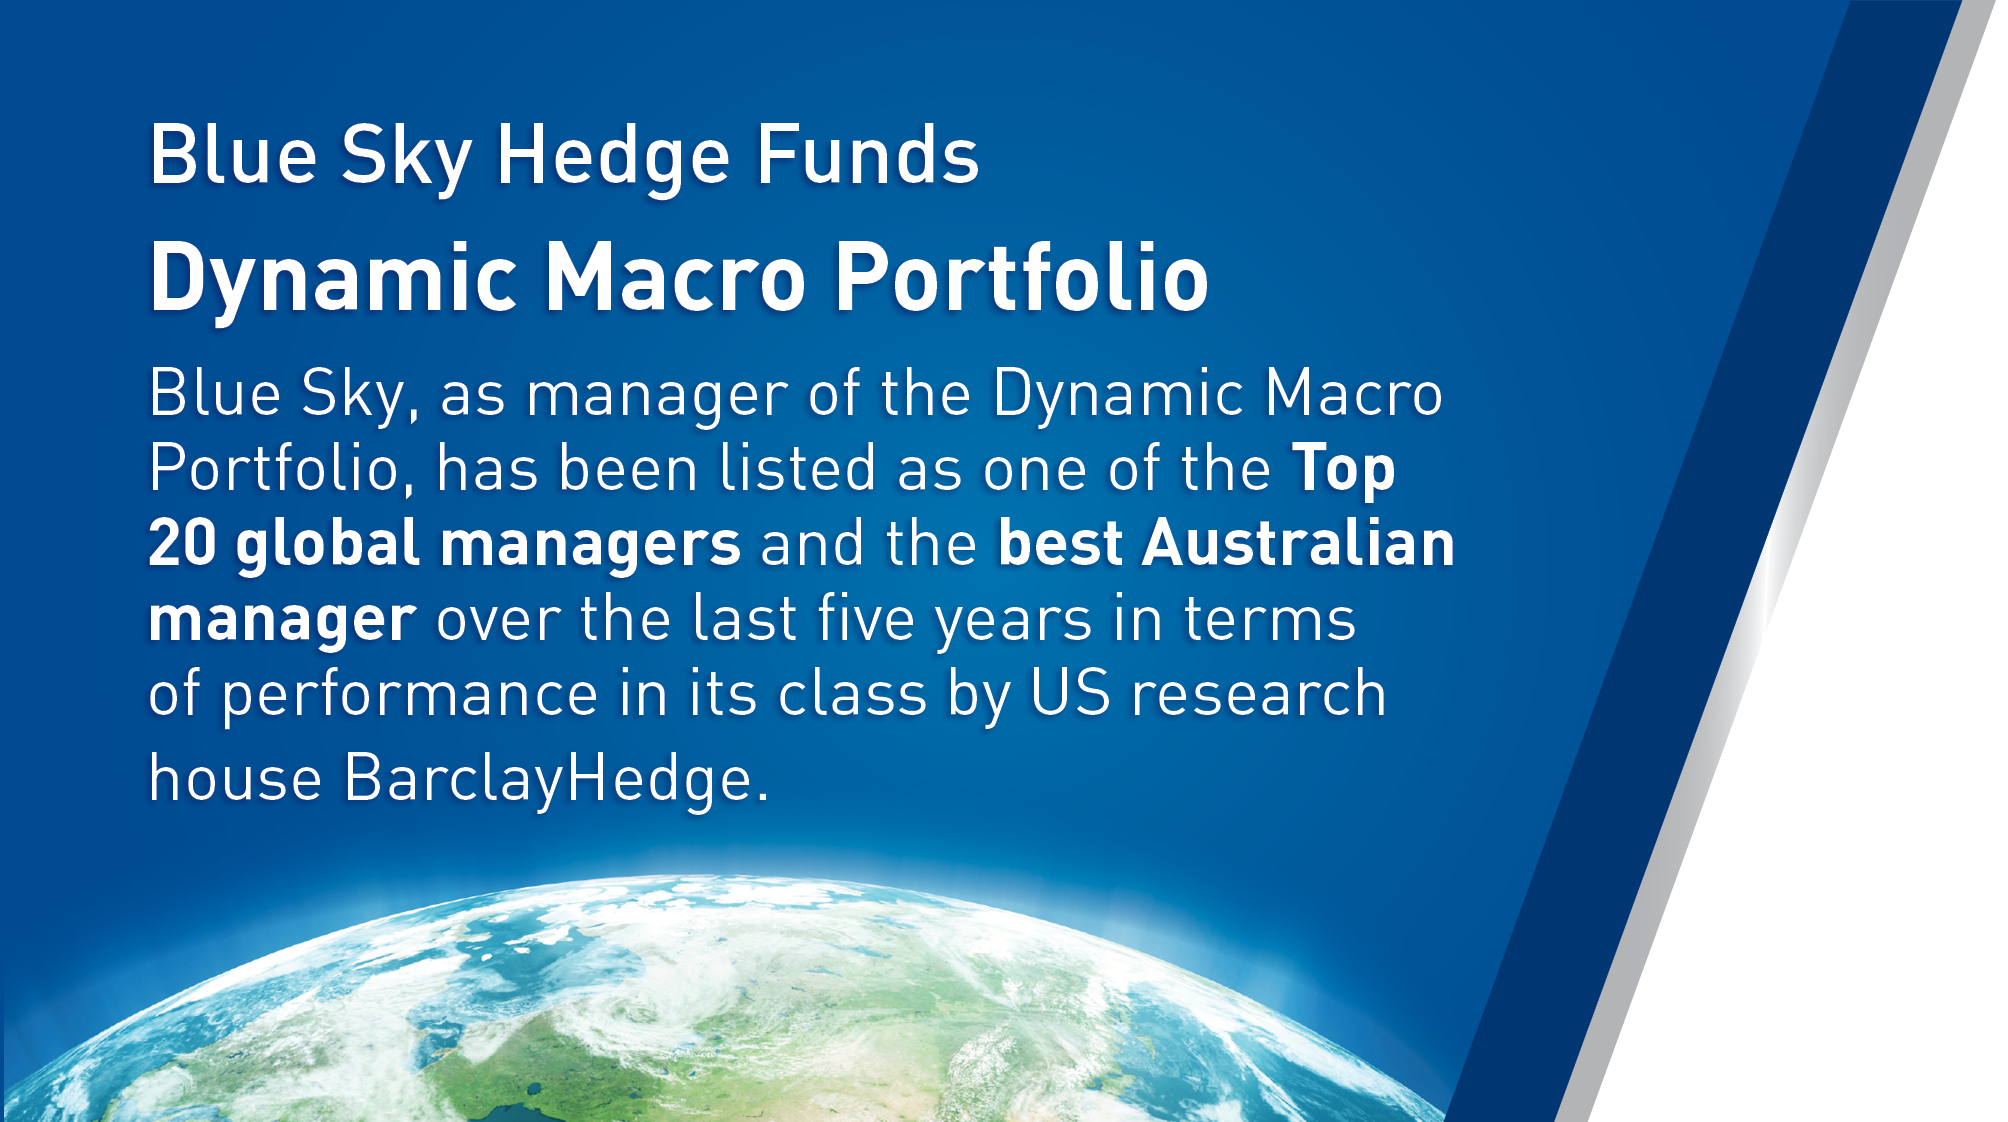 Blue Sky Hedge Funds Dynamic Macro Strategy